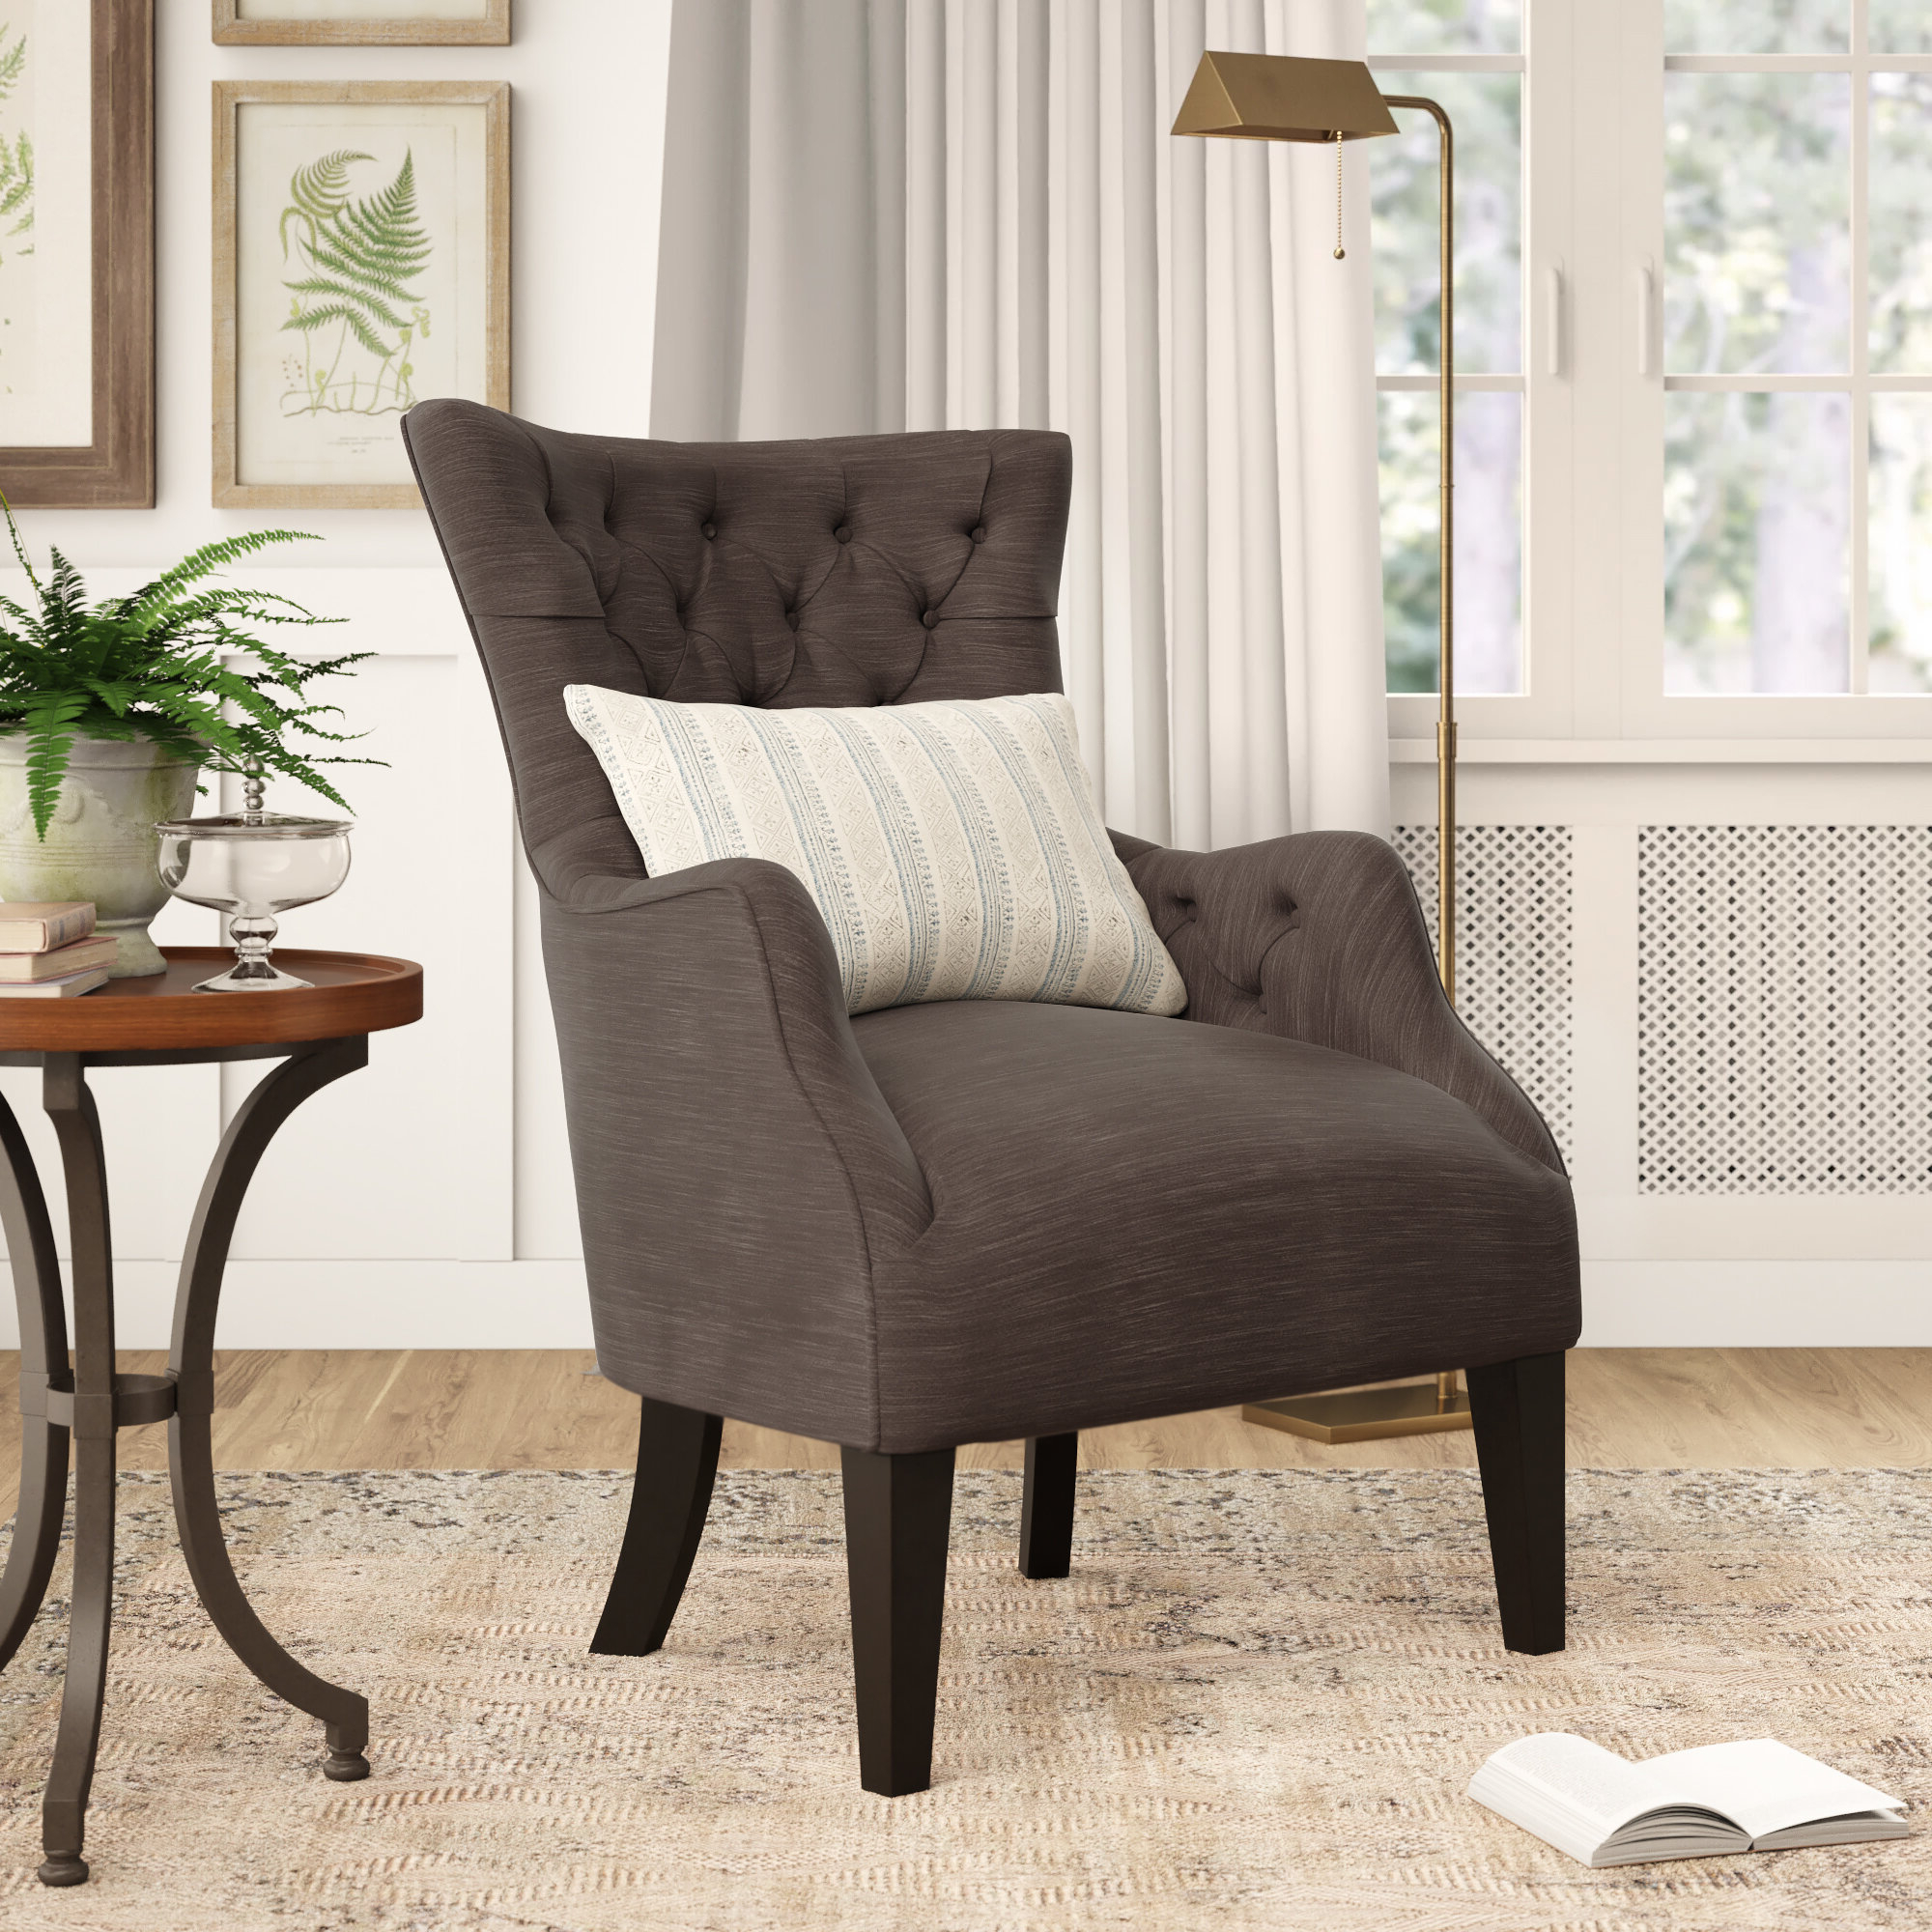 Galesville Tufted Polyester Wingback Chairs Within Best And Newest Polyester & Polyester Blend Birch Lane™ Accent Chairs You'll (View 5 of 20)